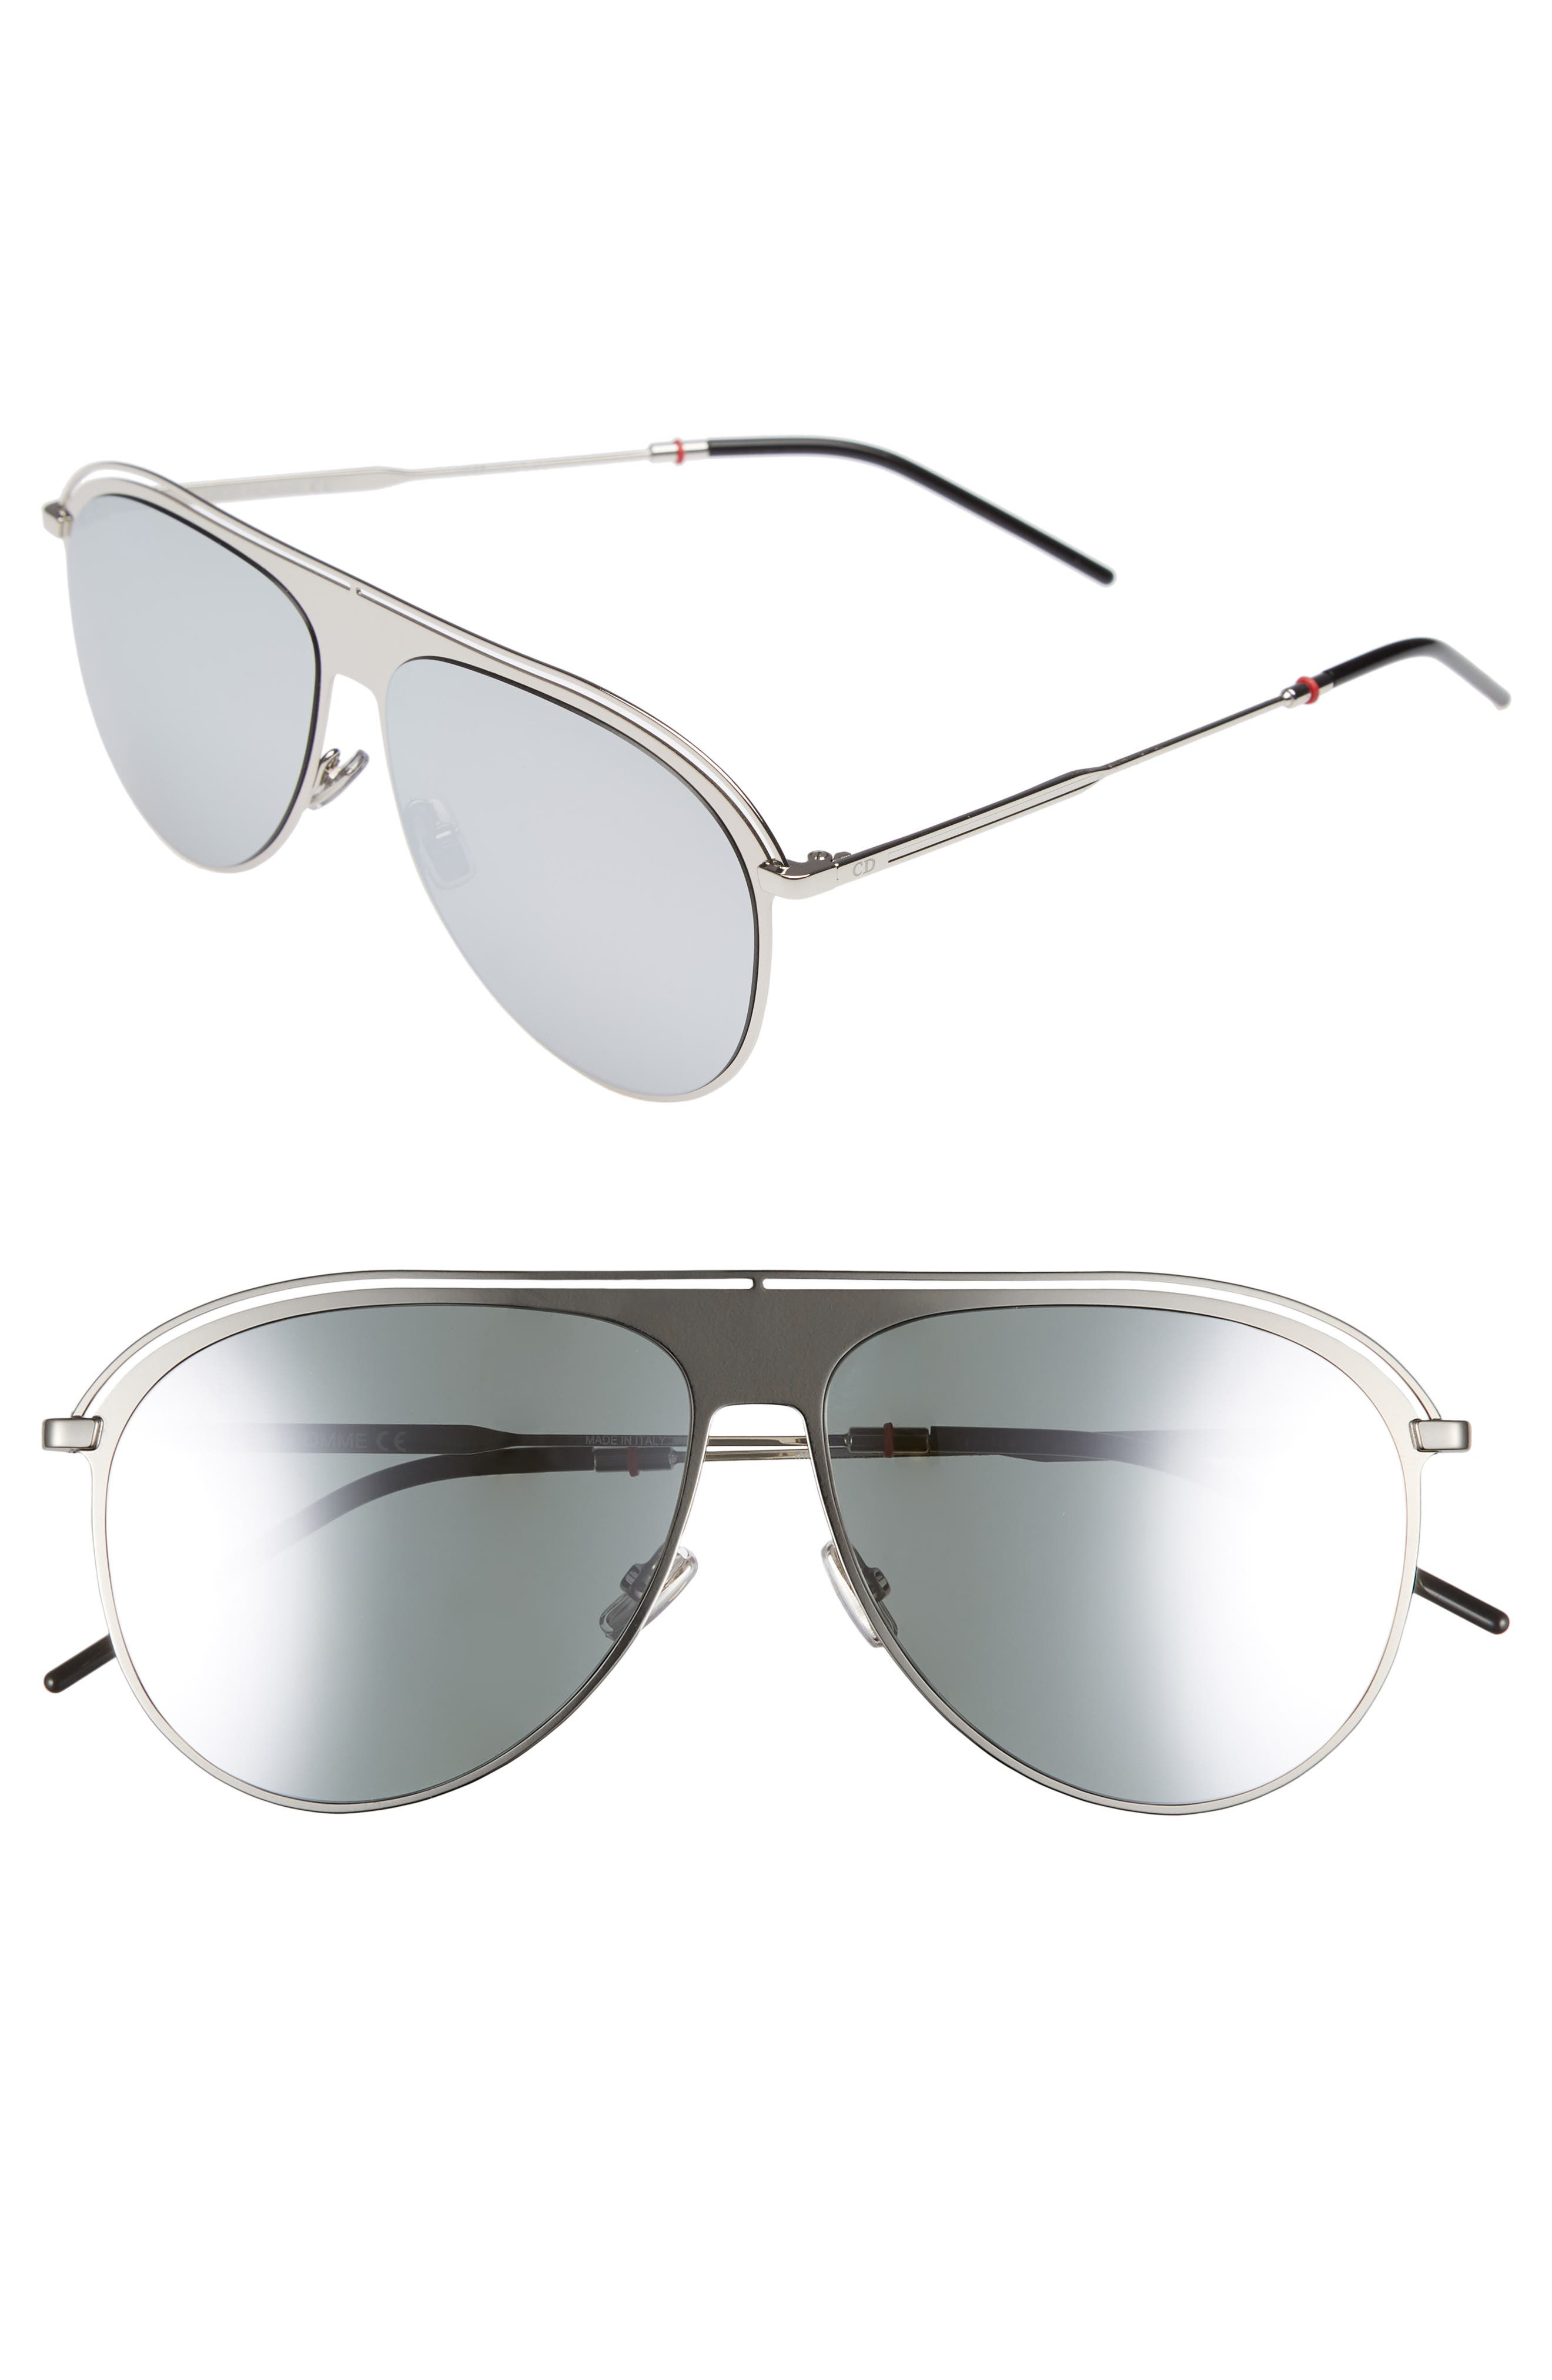 DIOR,                             59mm Polarized Aviator Sunglasses,                             Main thumbnail 1, color,                             PALLADIUM/ POLAR